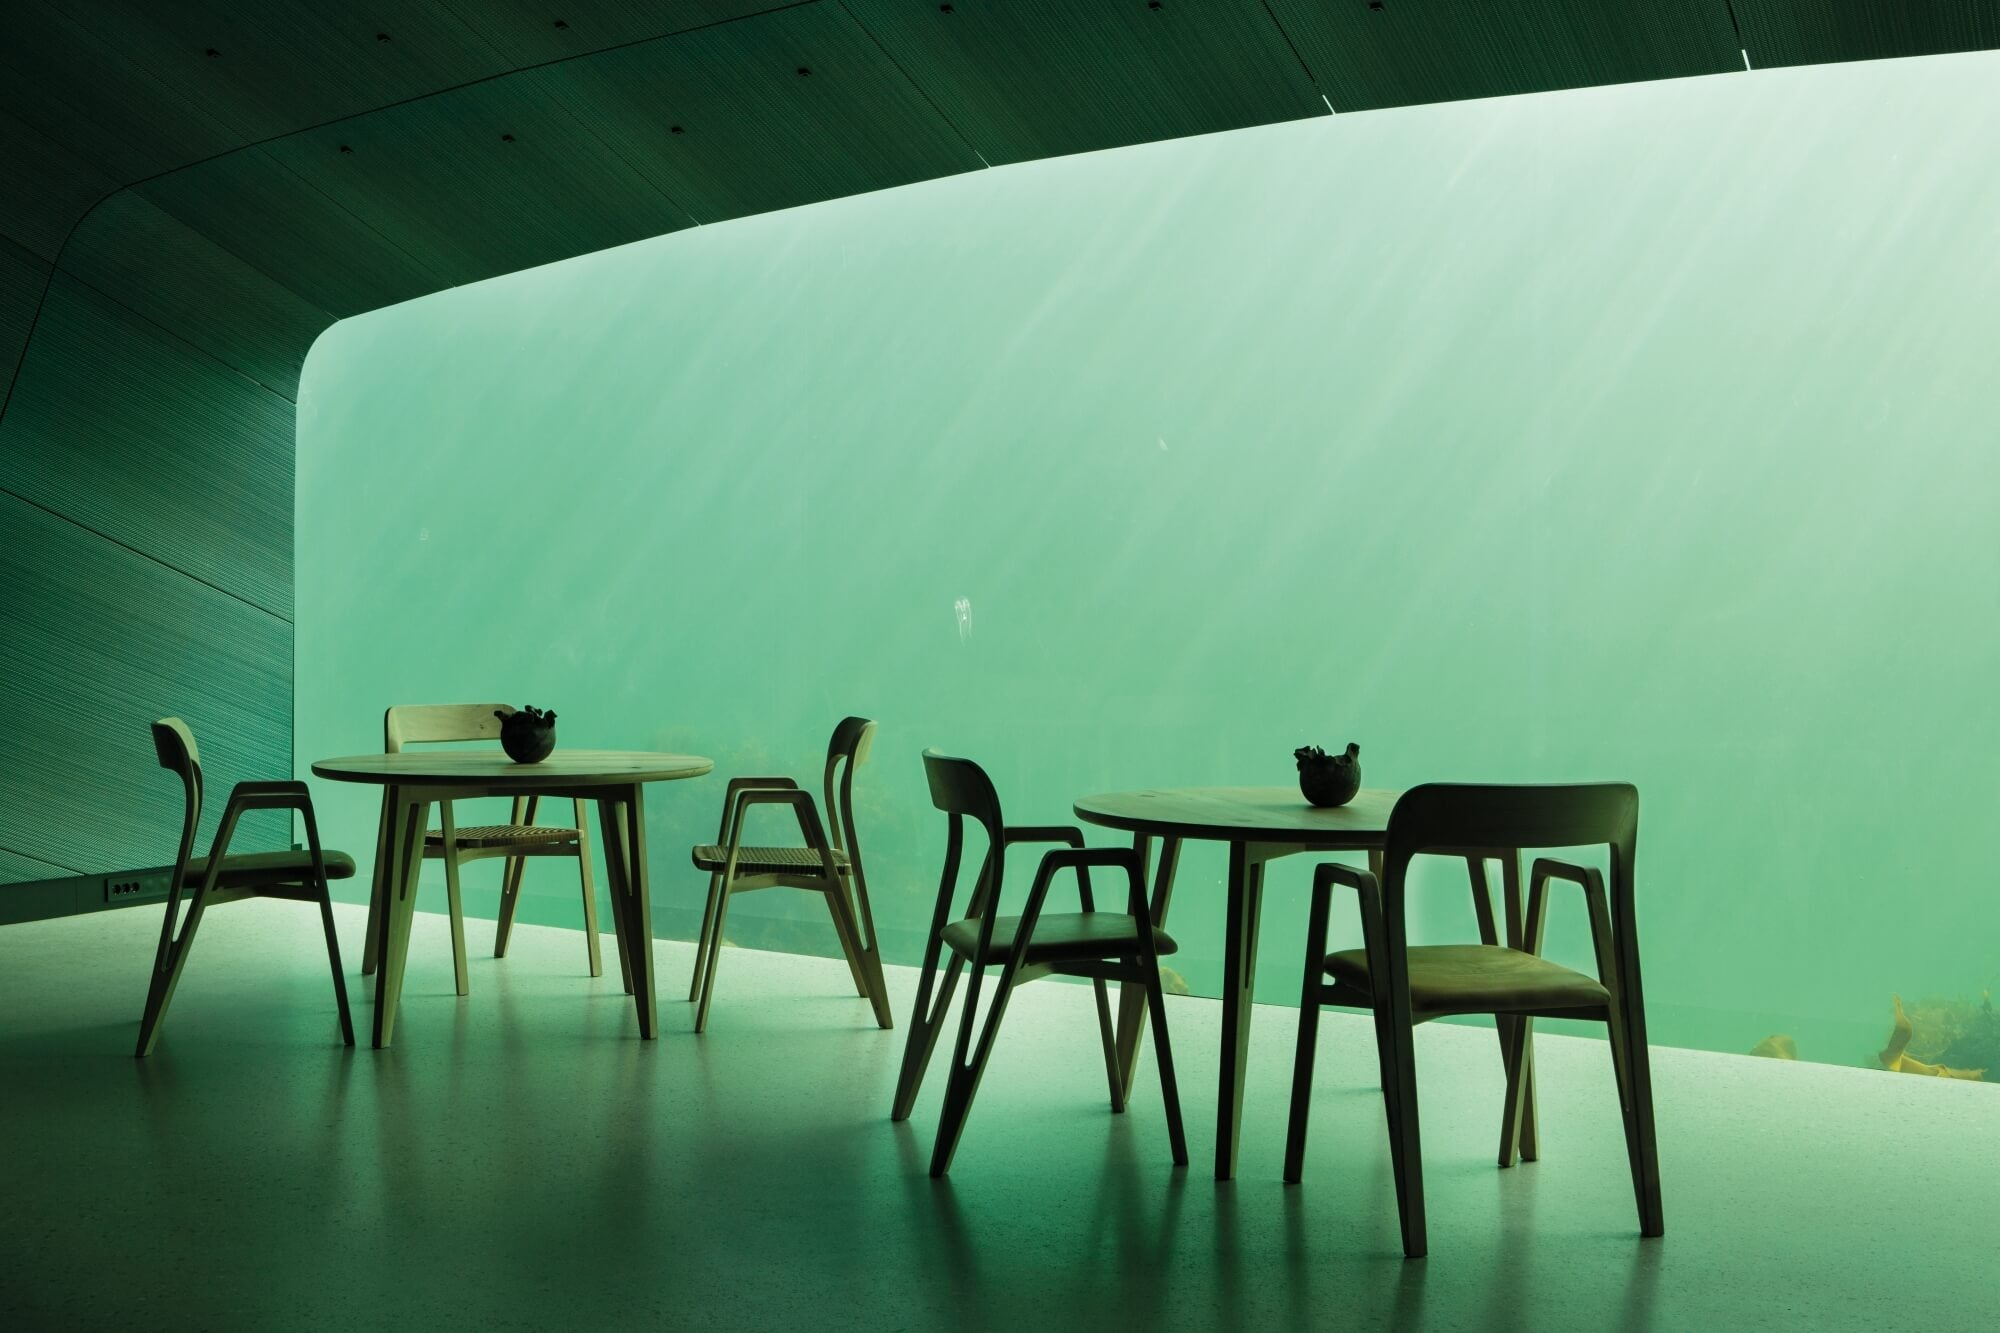 Restaurant tables in a dining room under a lake.